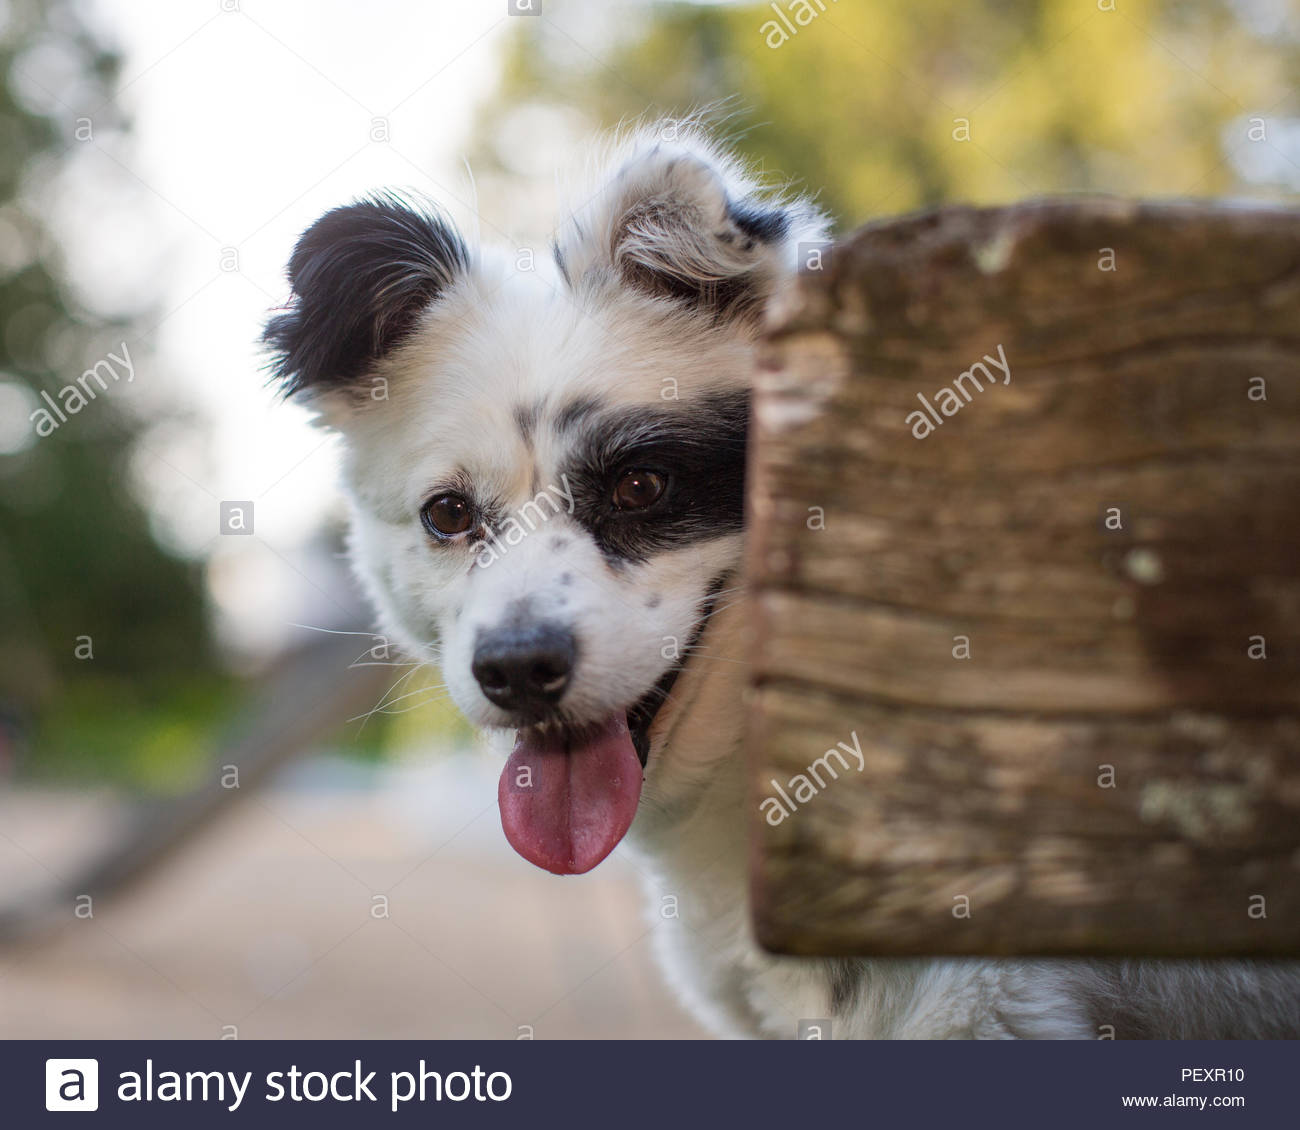 Close-up of white dog with black markings smiling and looking around log - Stock Image